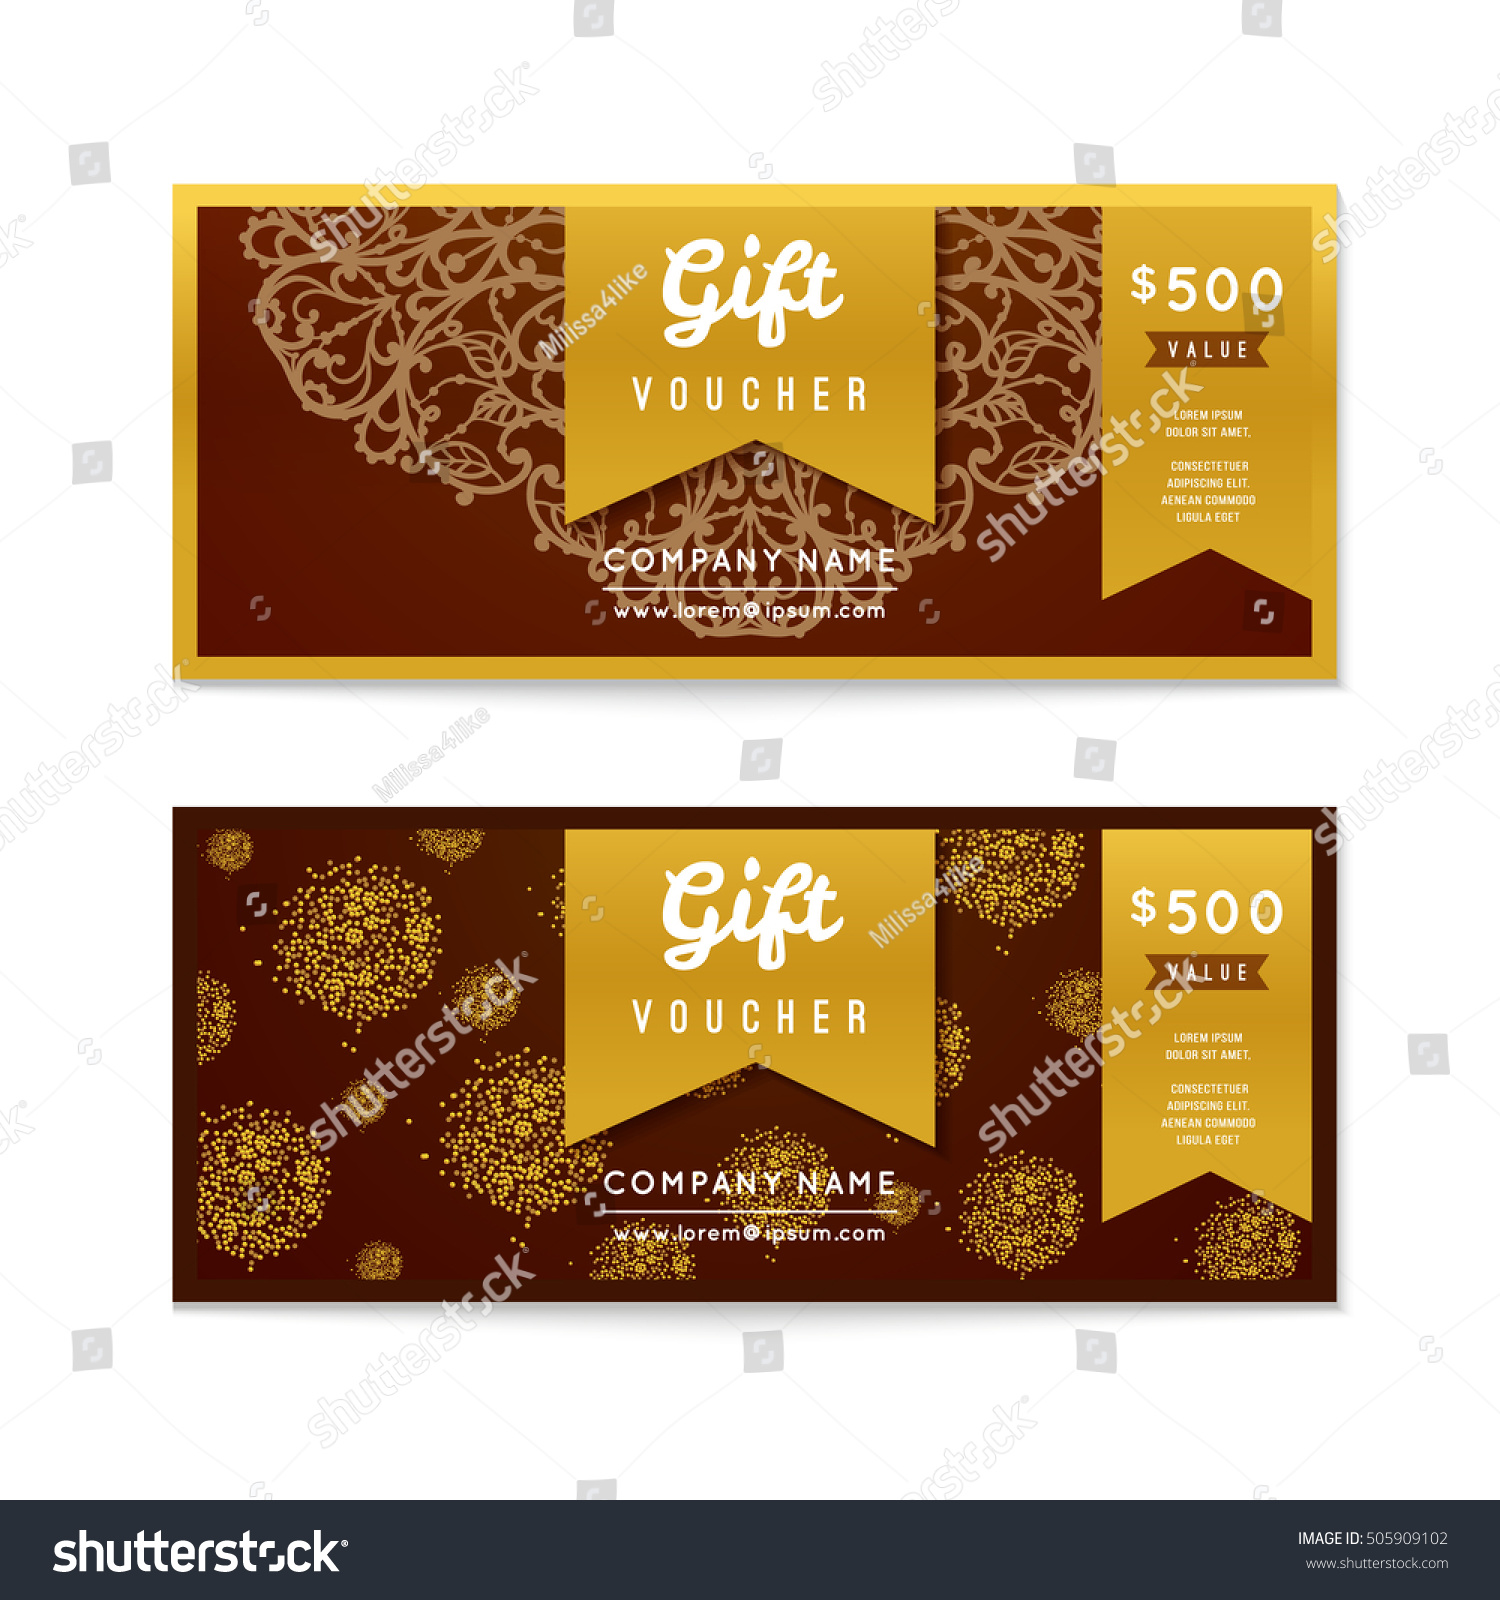 Voucher template applicable pictures gift termination letter voucher gift certificate coupon template floral stock vector stock vector voucher gift certificate and coupon template yadclub Image collections